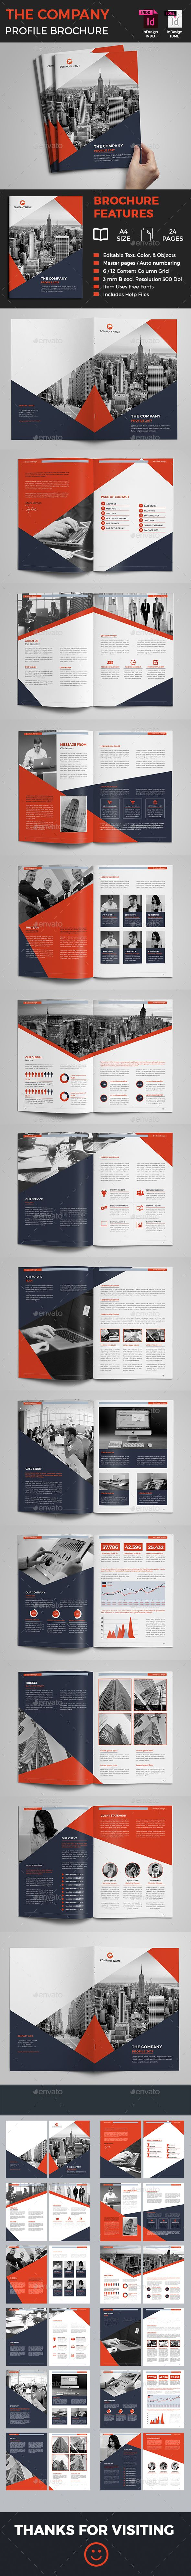 Company Profile - Corporate Brochures | Download: https://graphicriver.net/item/company-profile/19479629?ref=sinzo